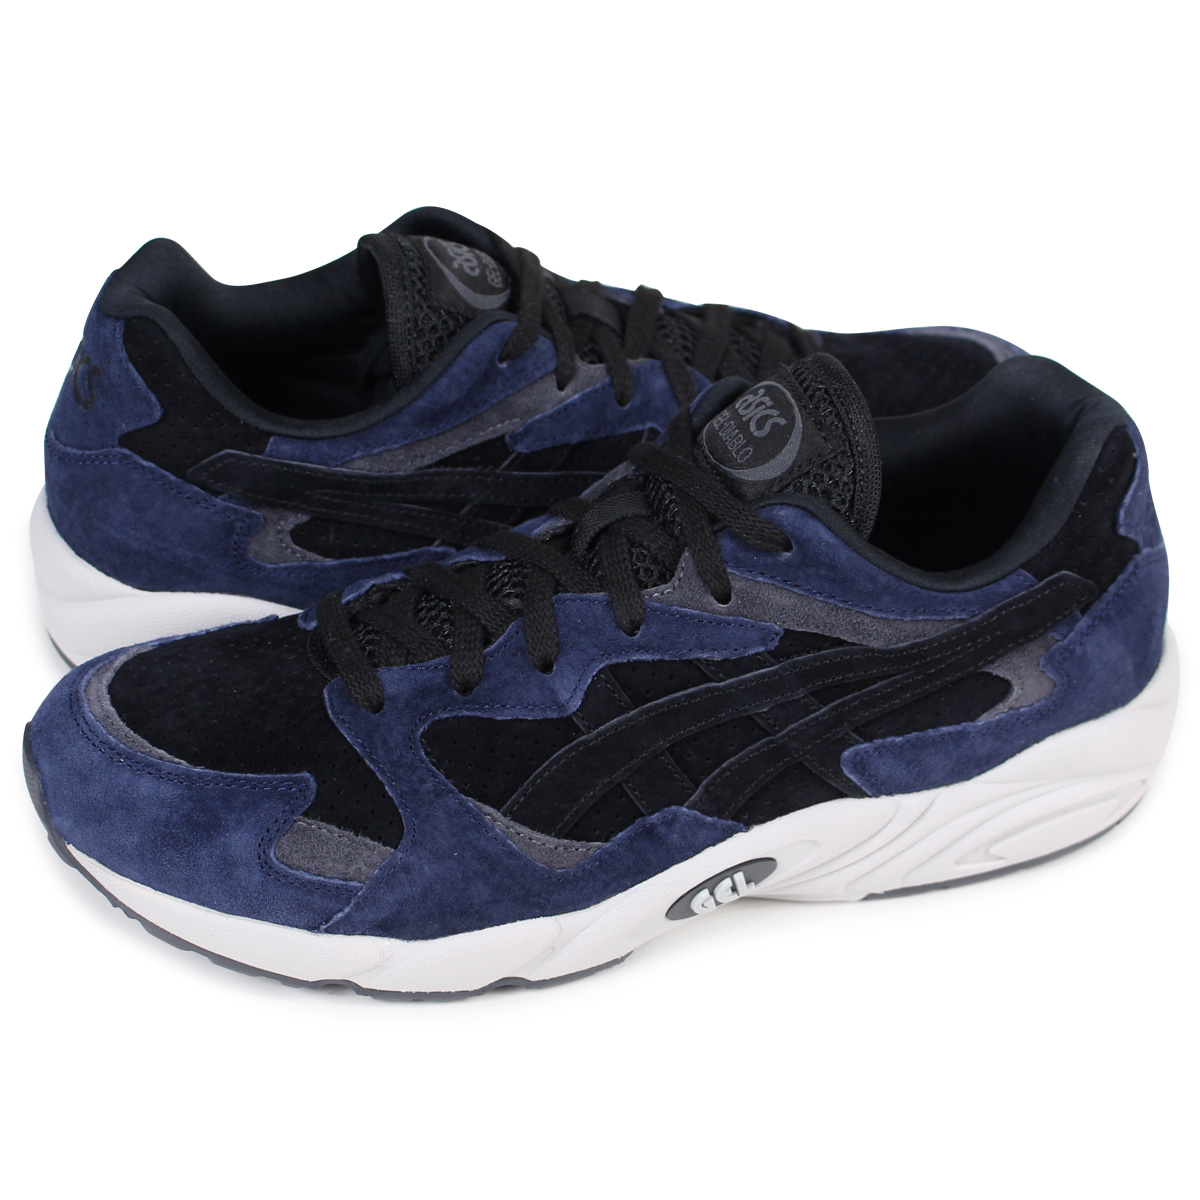 f96694f701438 asics Tiger GEL-DIABLO ASICS tiger gel Diablo sneakers HL7U0-9090 men black  [182]